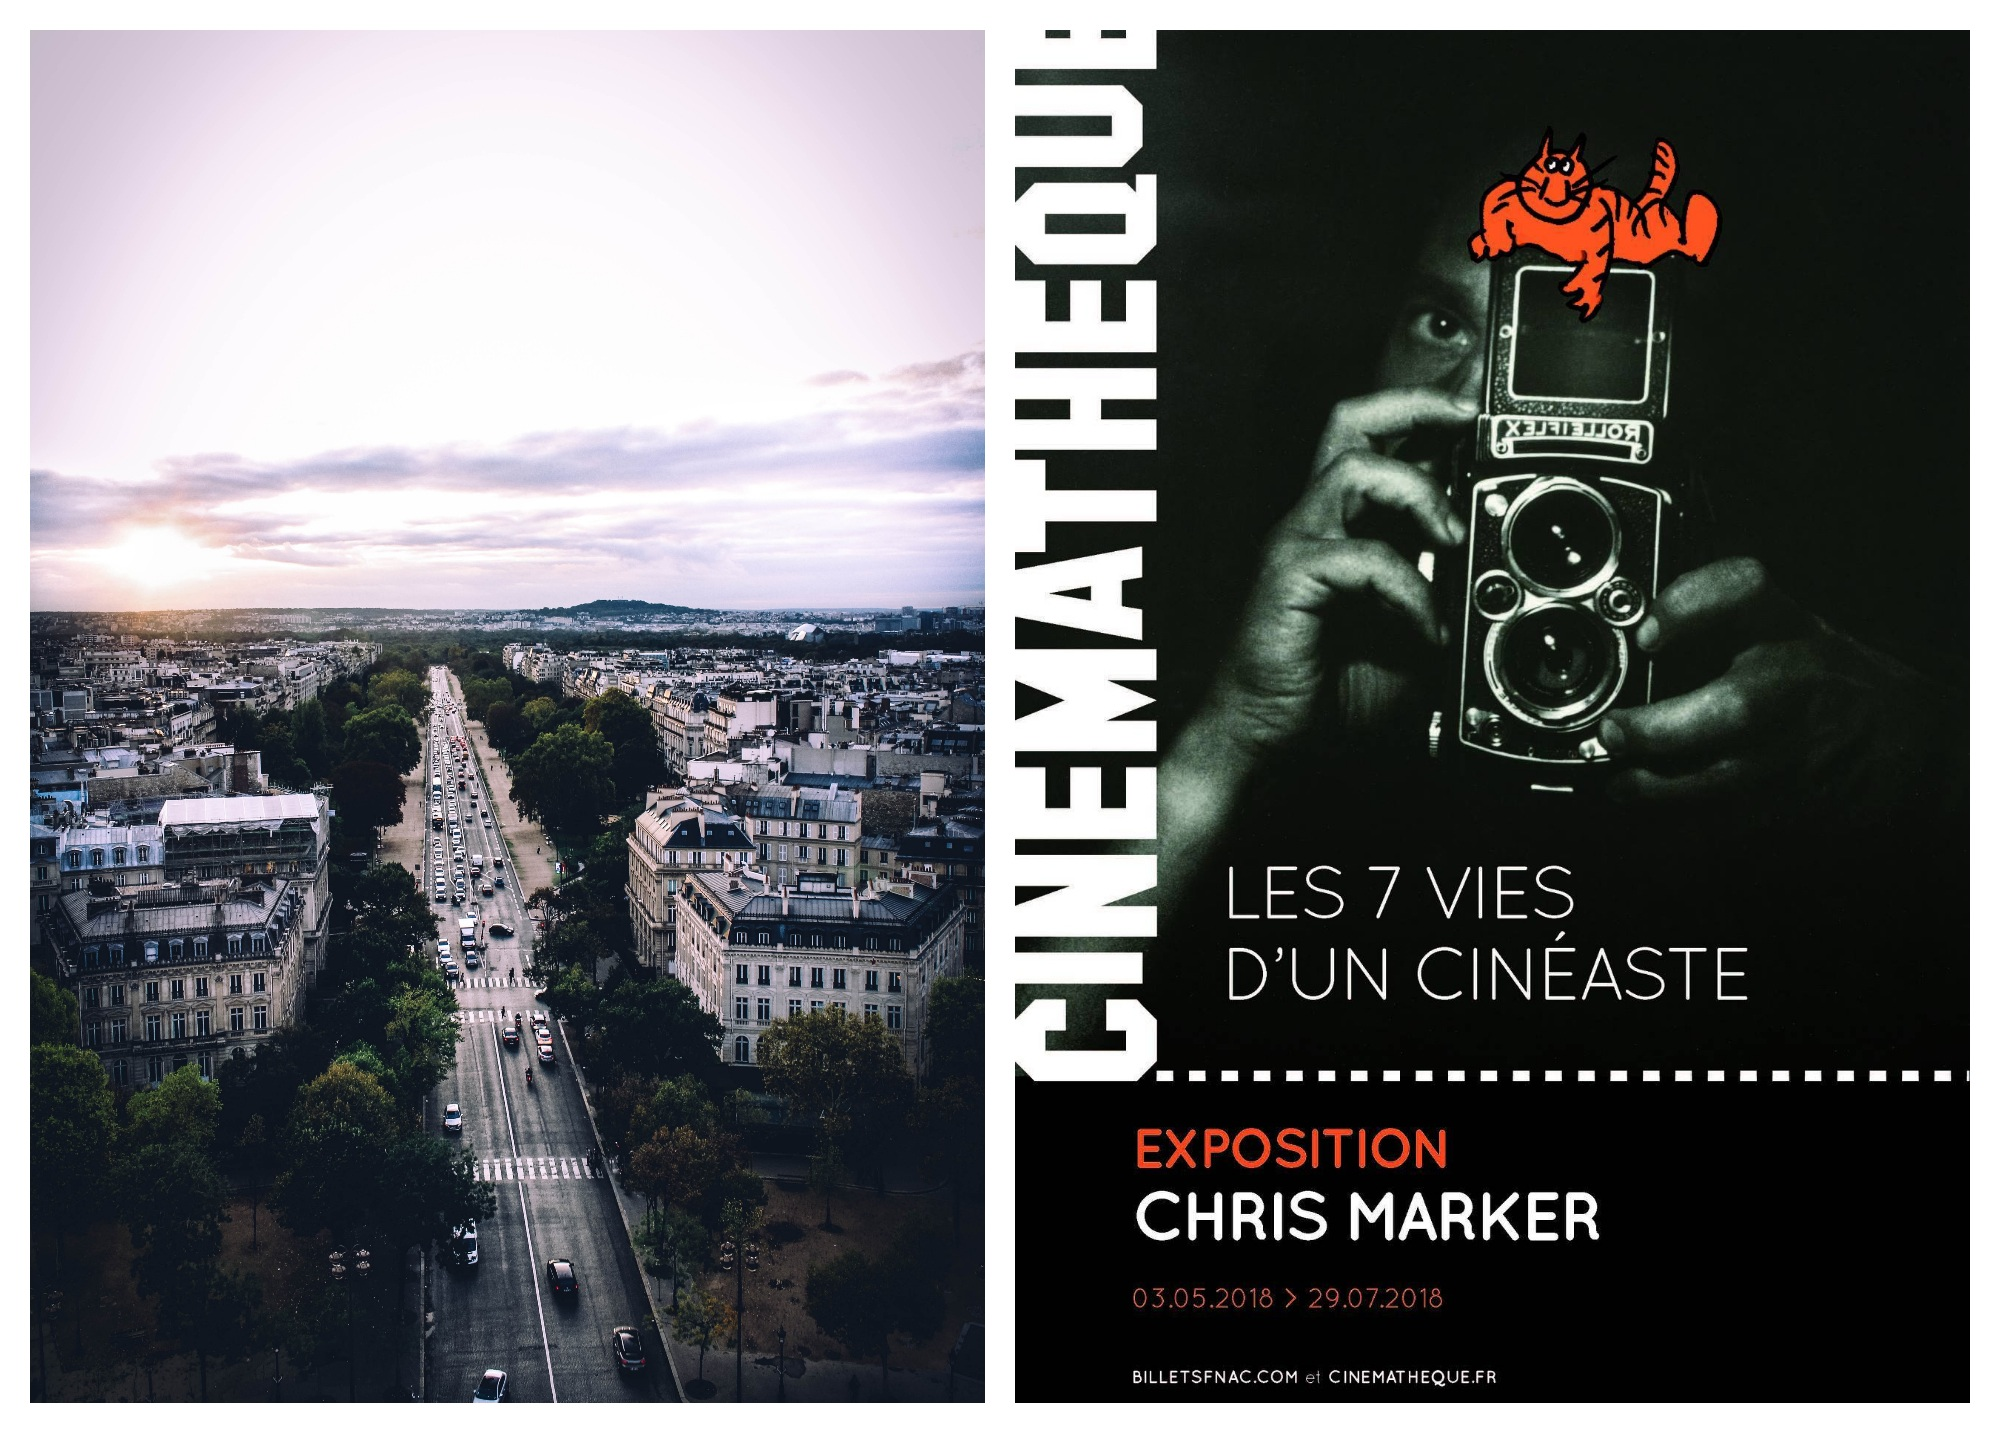 One of Paris' boulevards at sunset in May (left) and a poster for a film exhibition event (right).